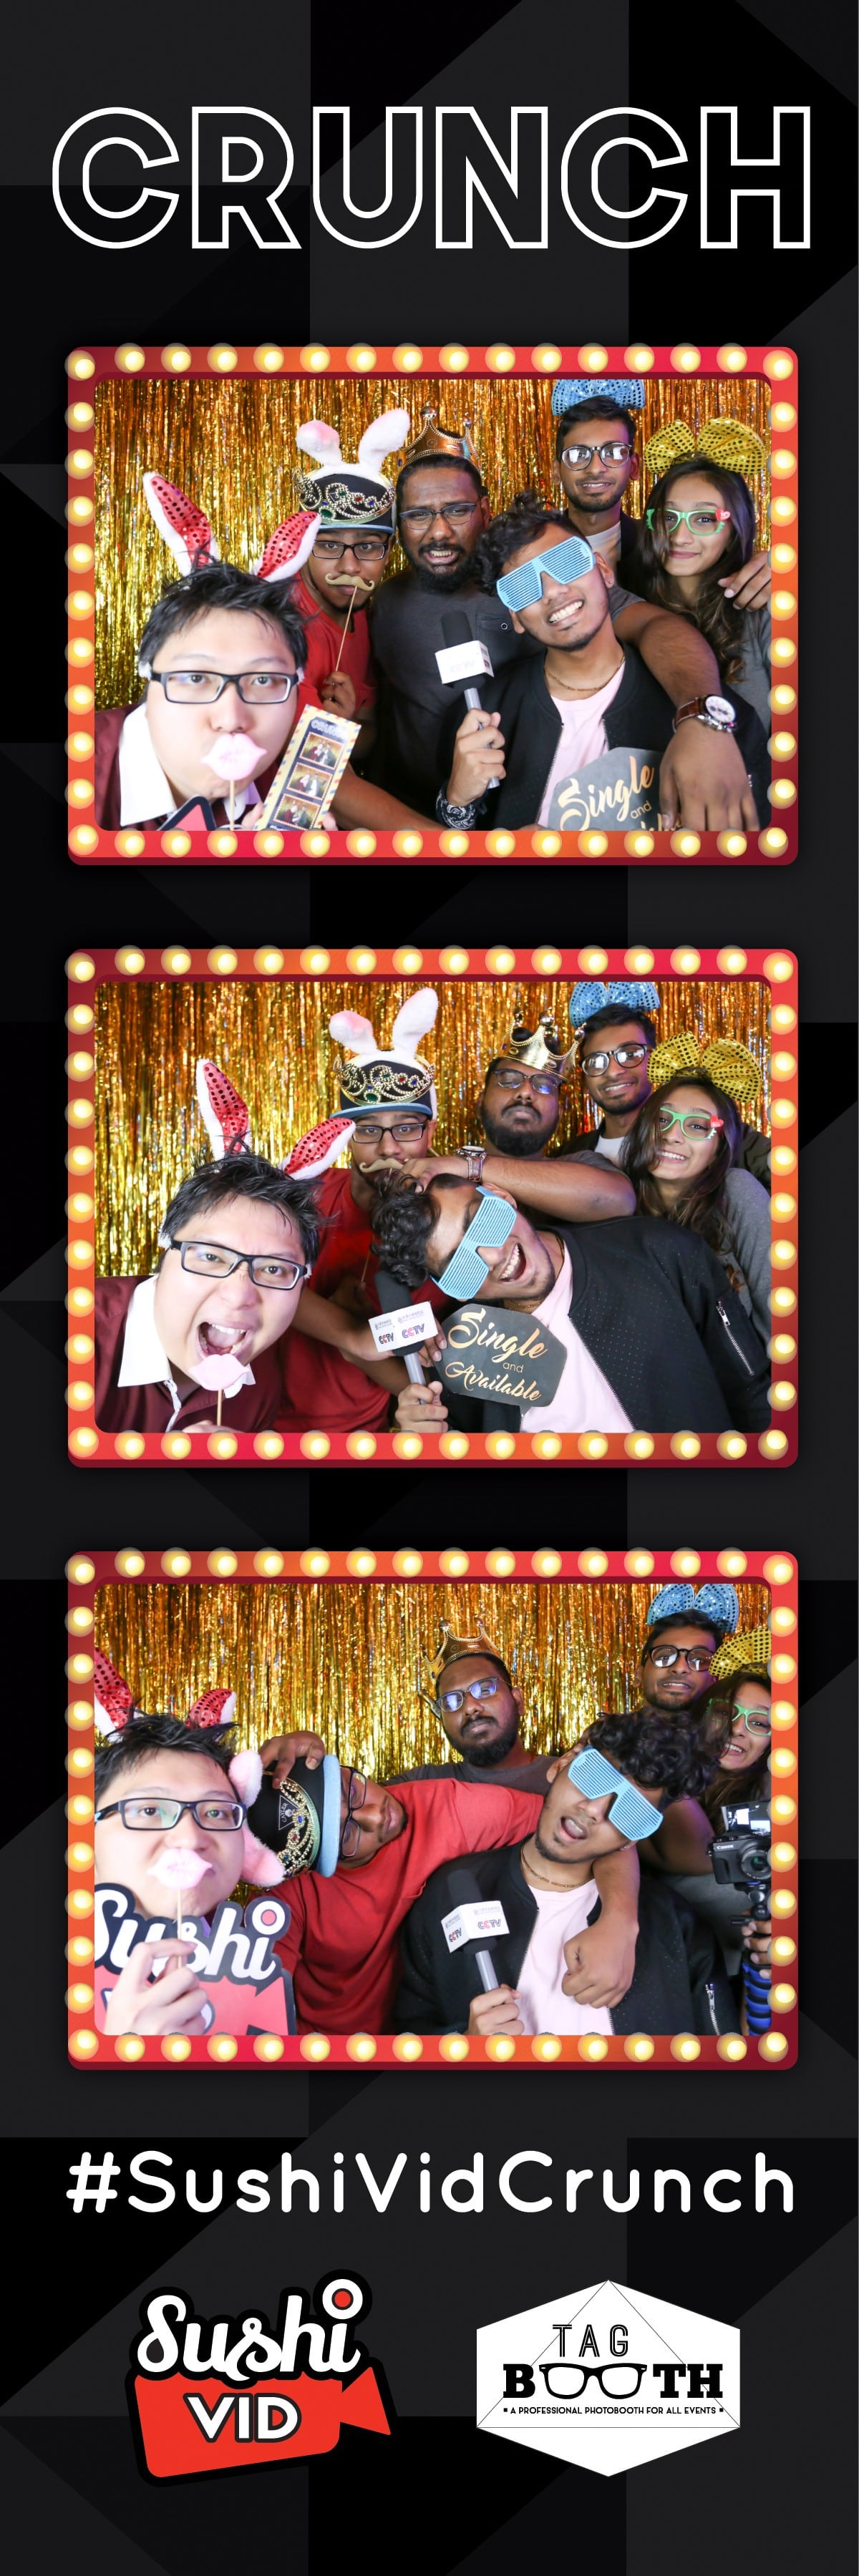 Sushivid+crunch+tagbooth1+41